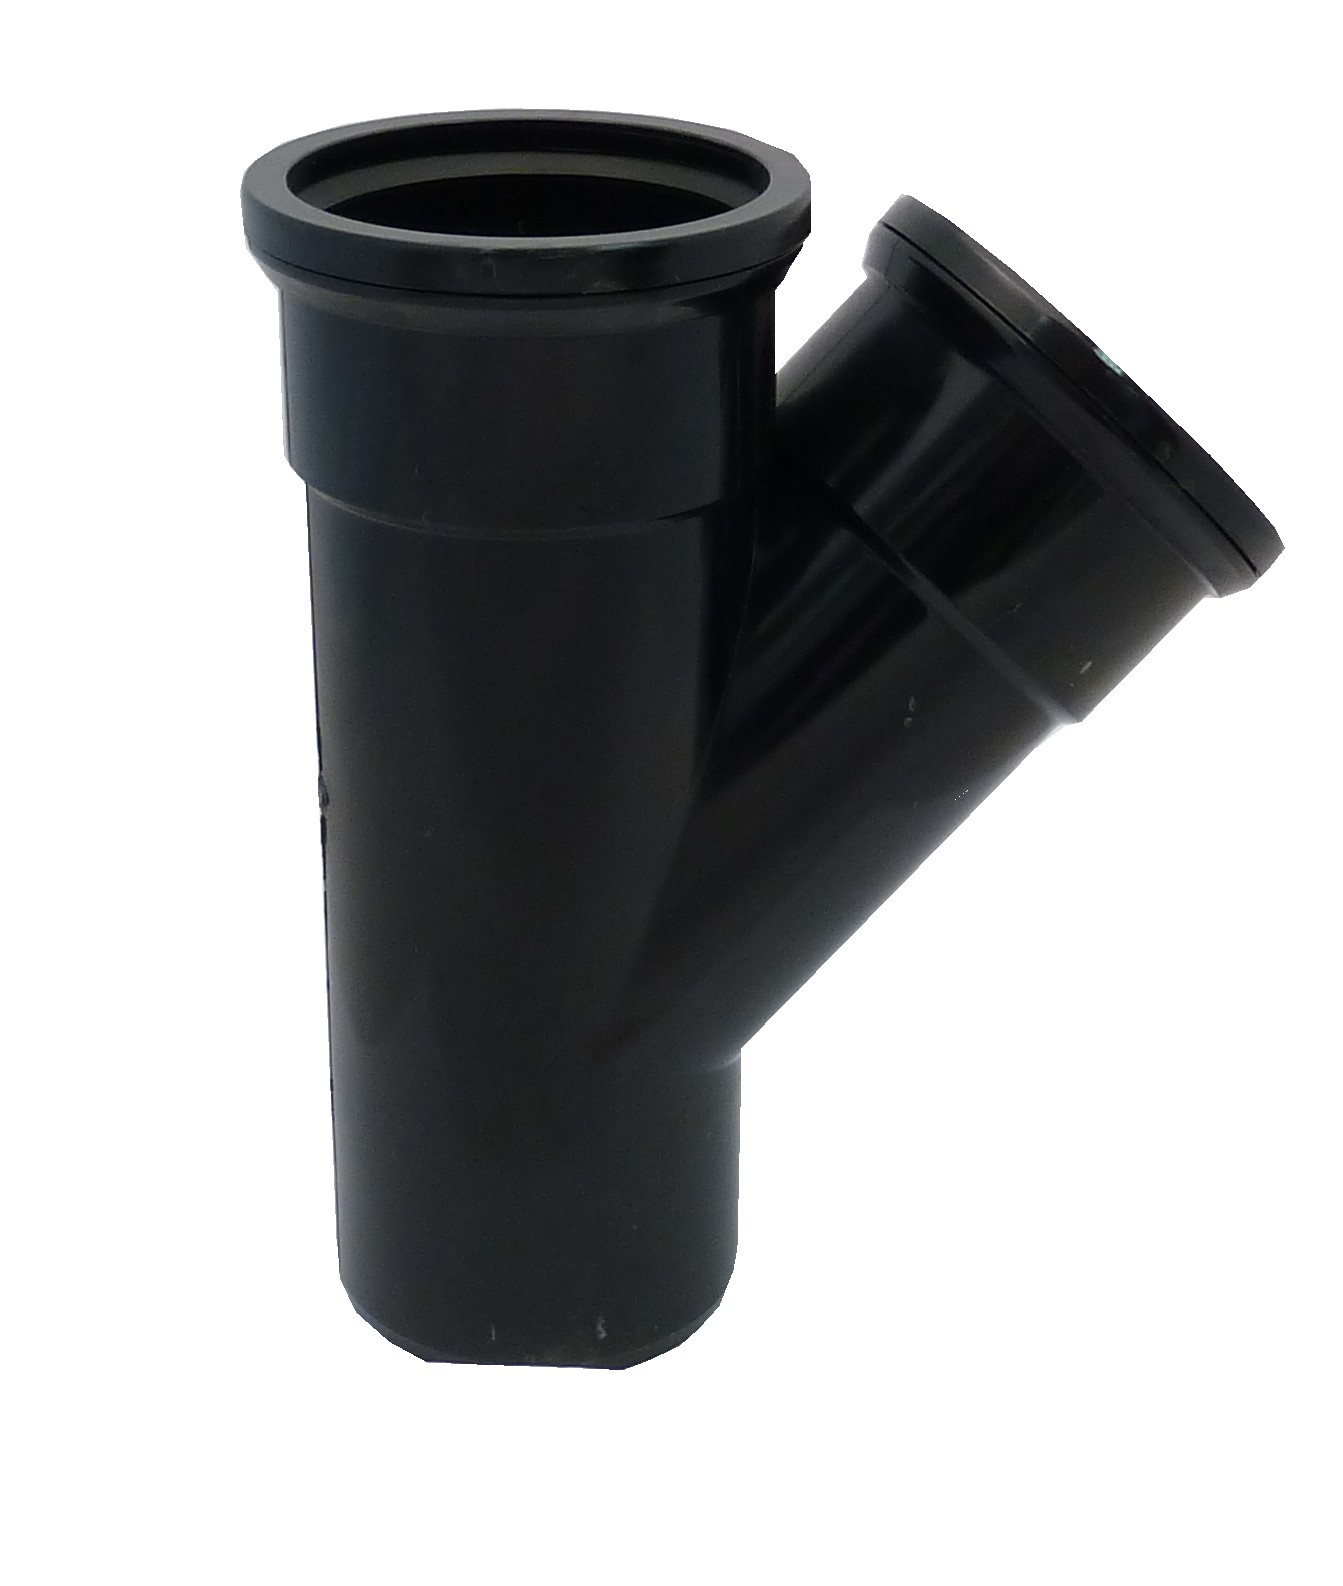 110mm Soil Pipe 135 176 Double Socket Branch Black